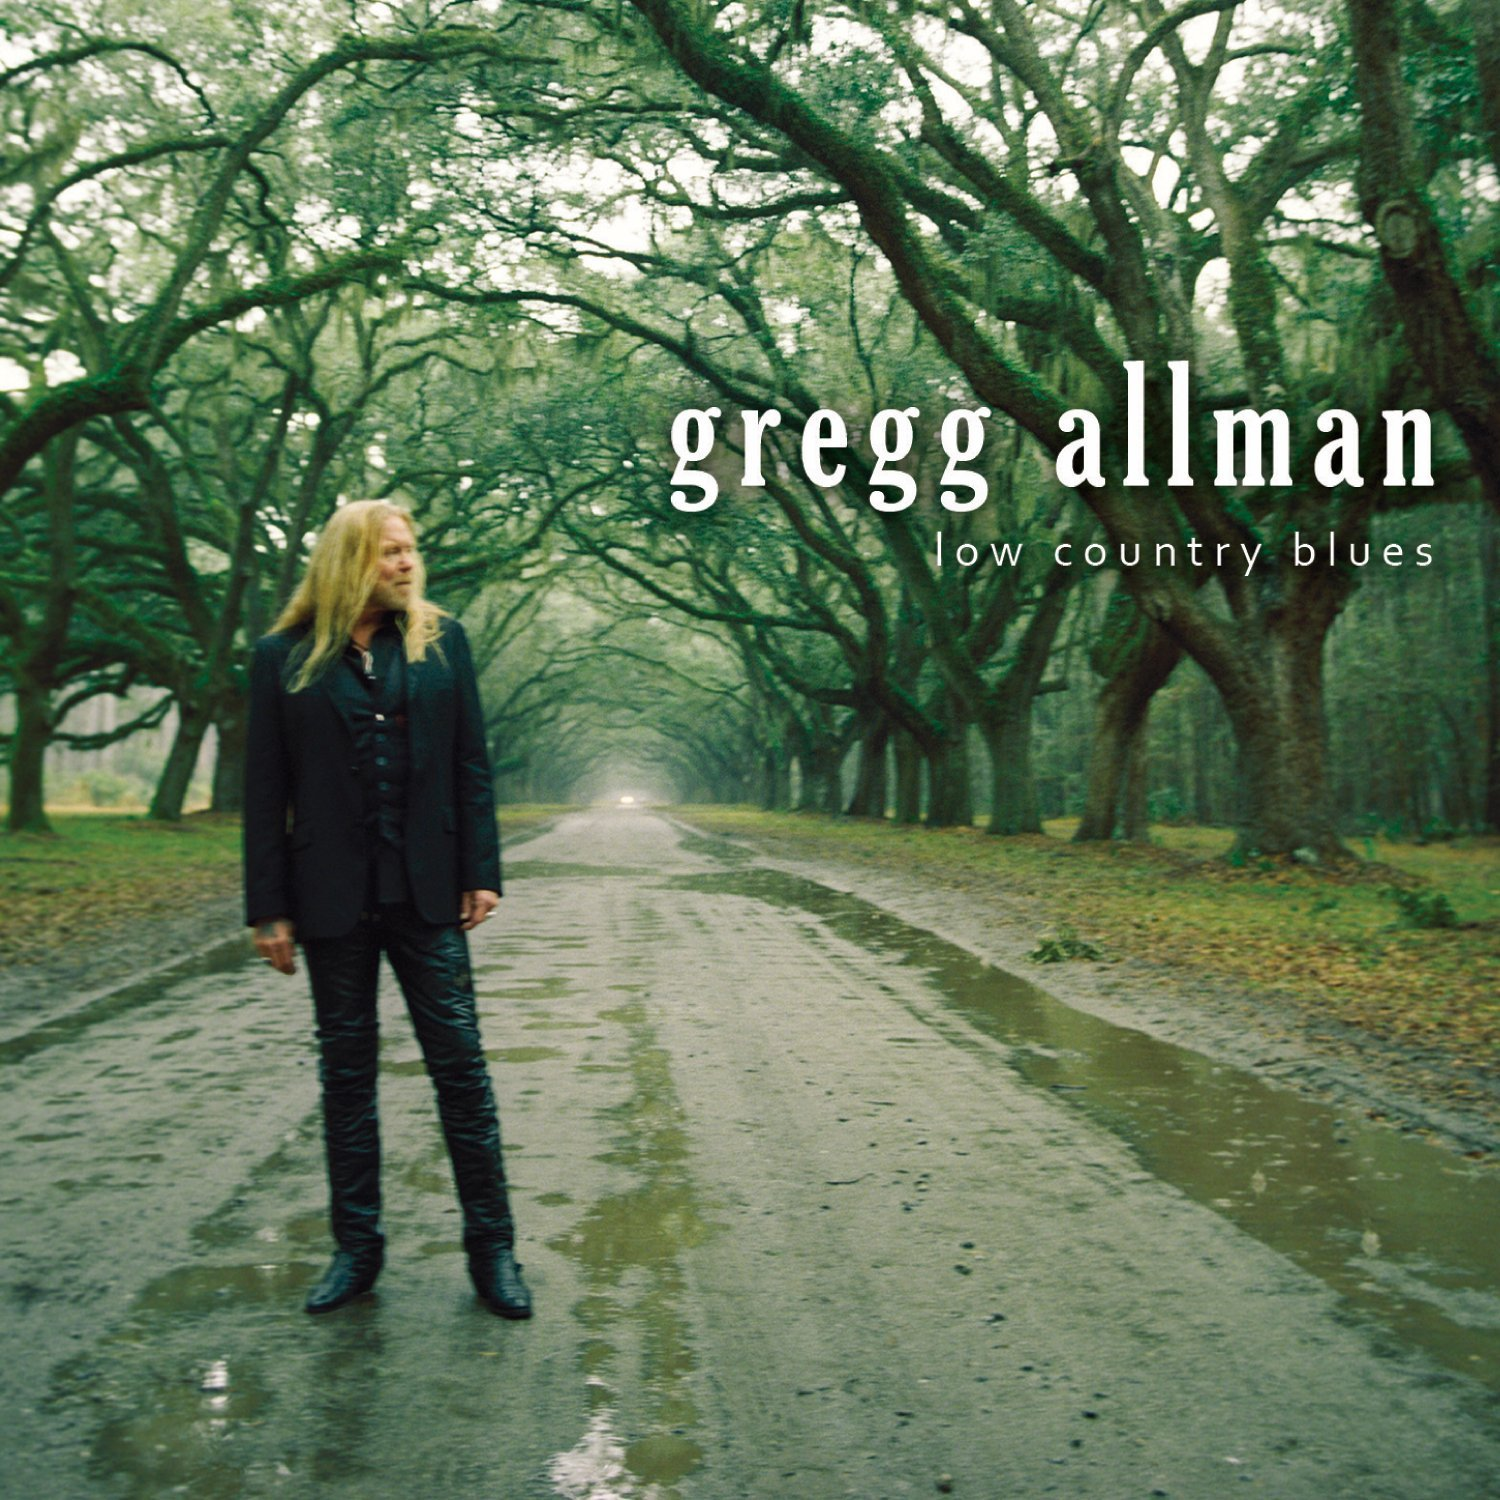 Low Country Blues [2 LP] by Allman, Gregg